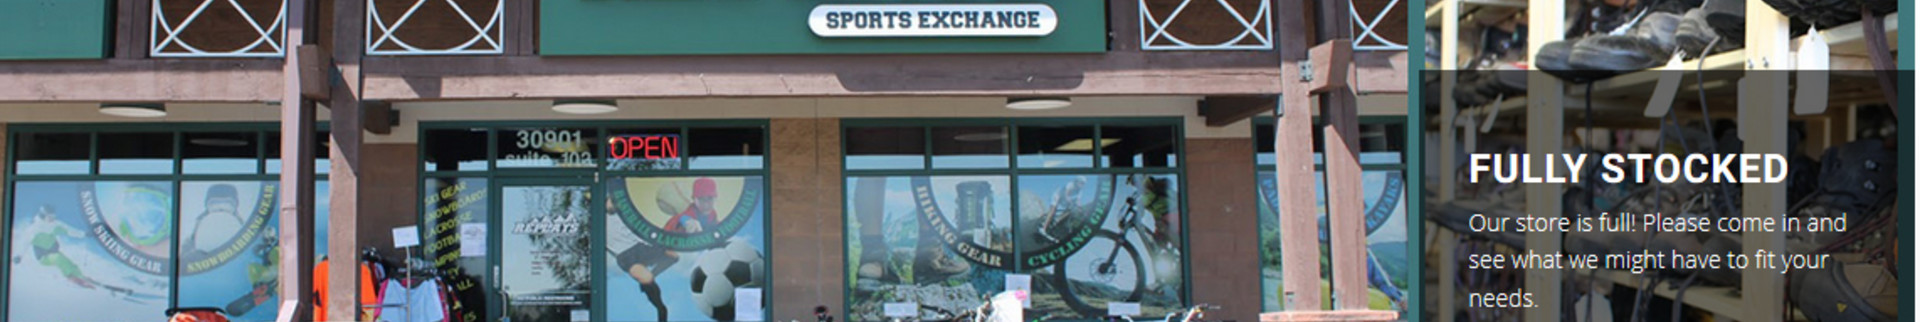 Replays Sports Exchange's banner image.